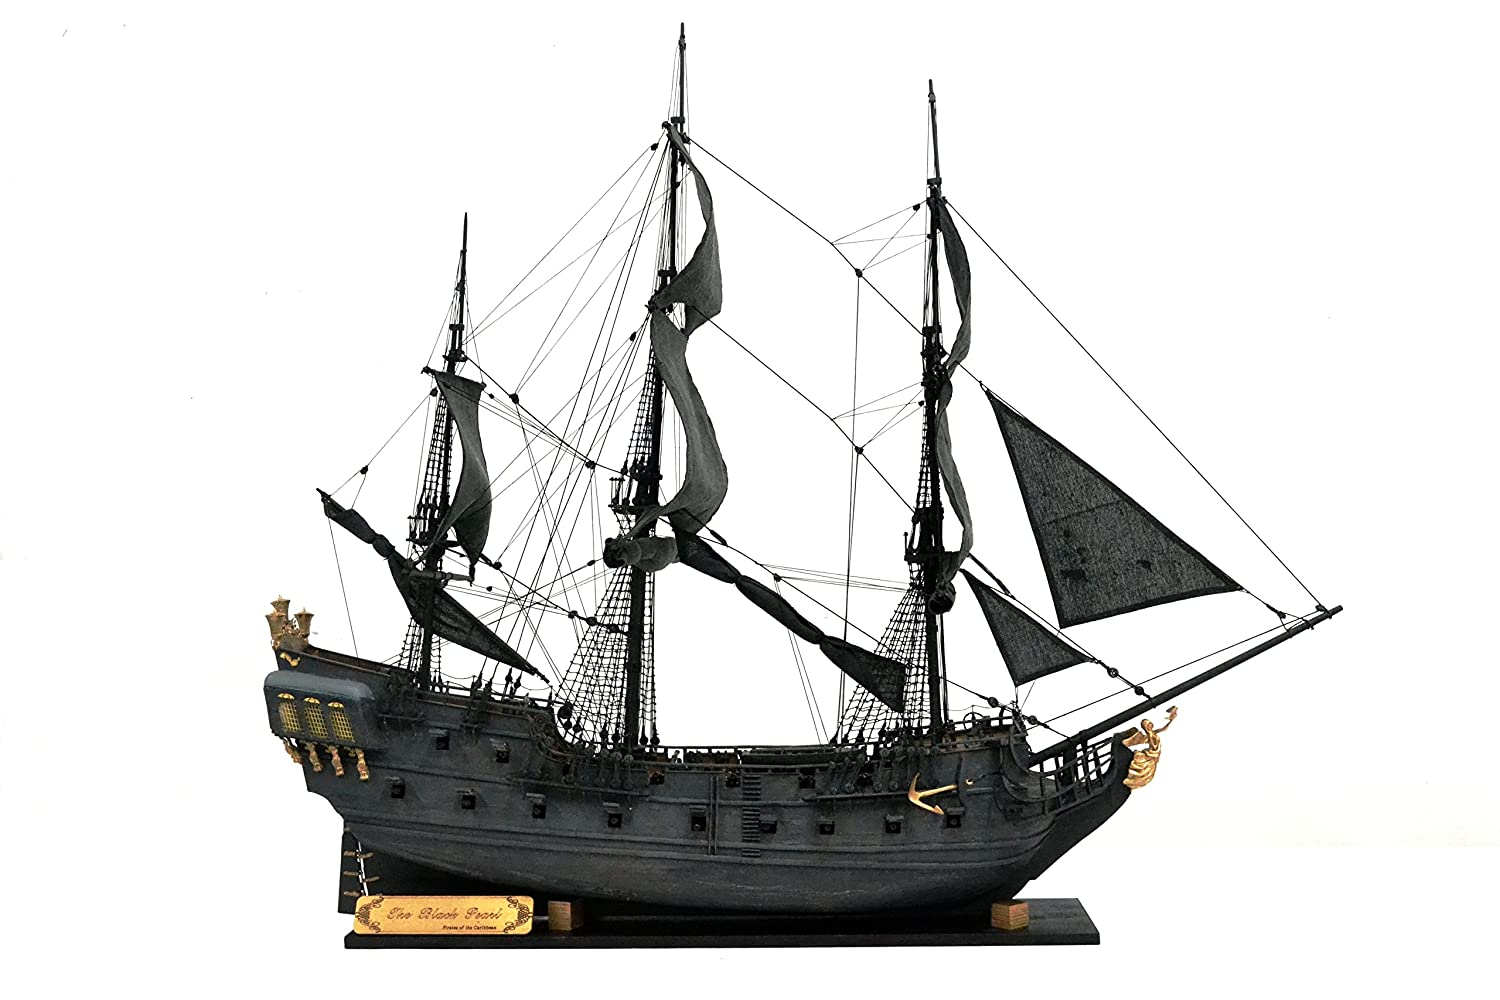 Amazoncom Black Pearl Sailing 150 Wood Ship Model Kits Version